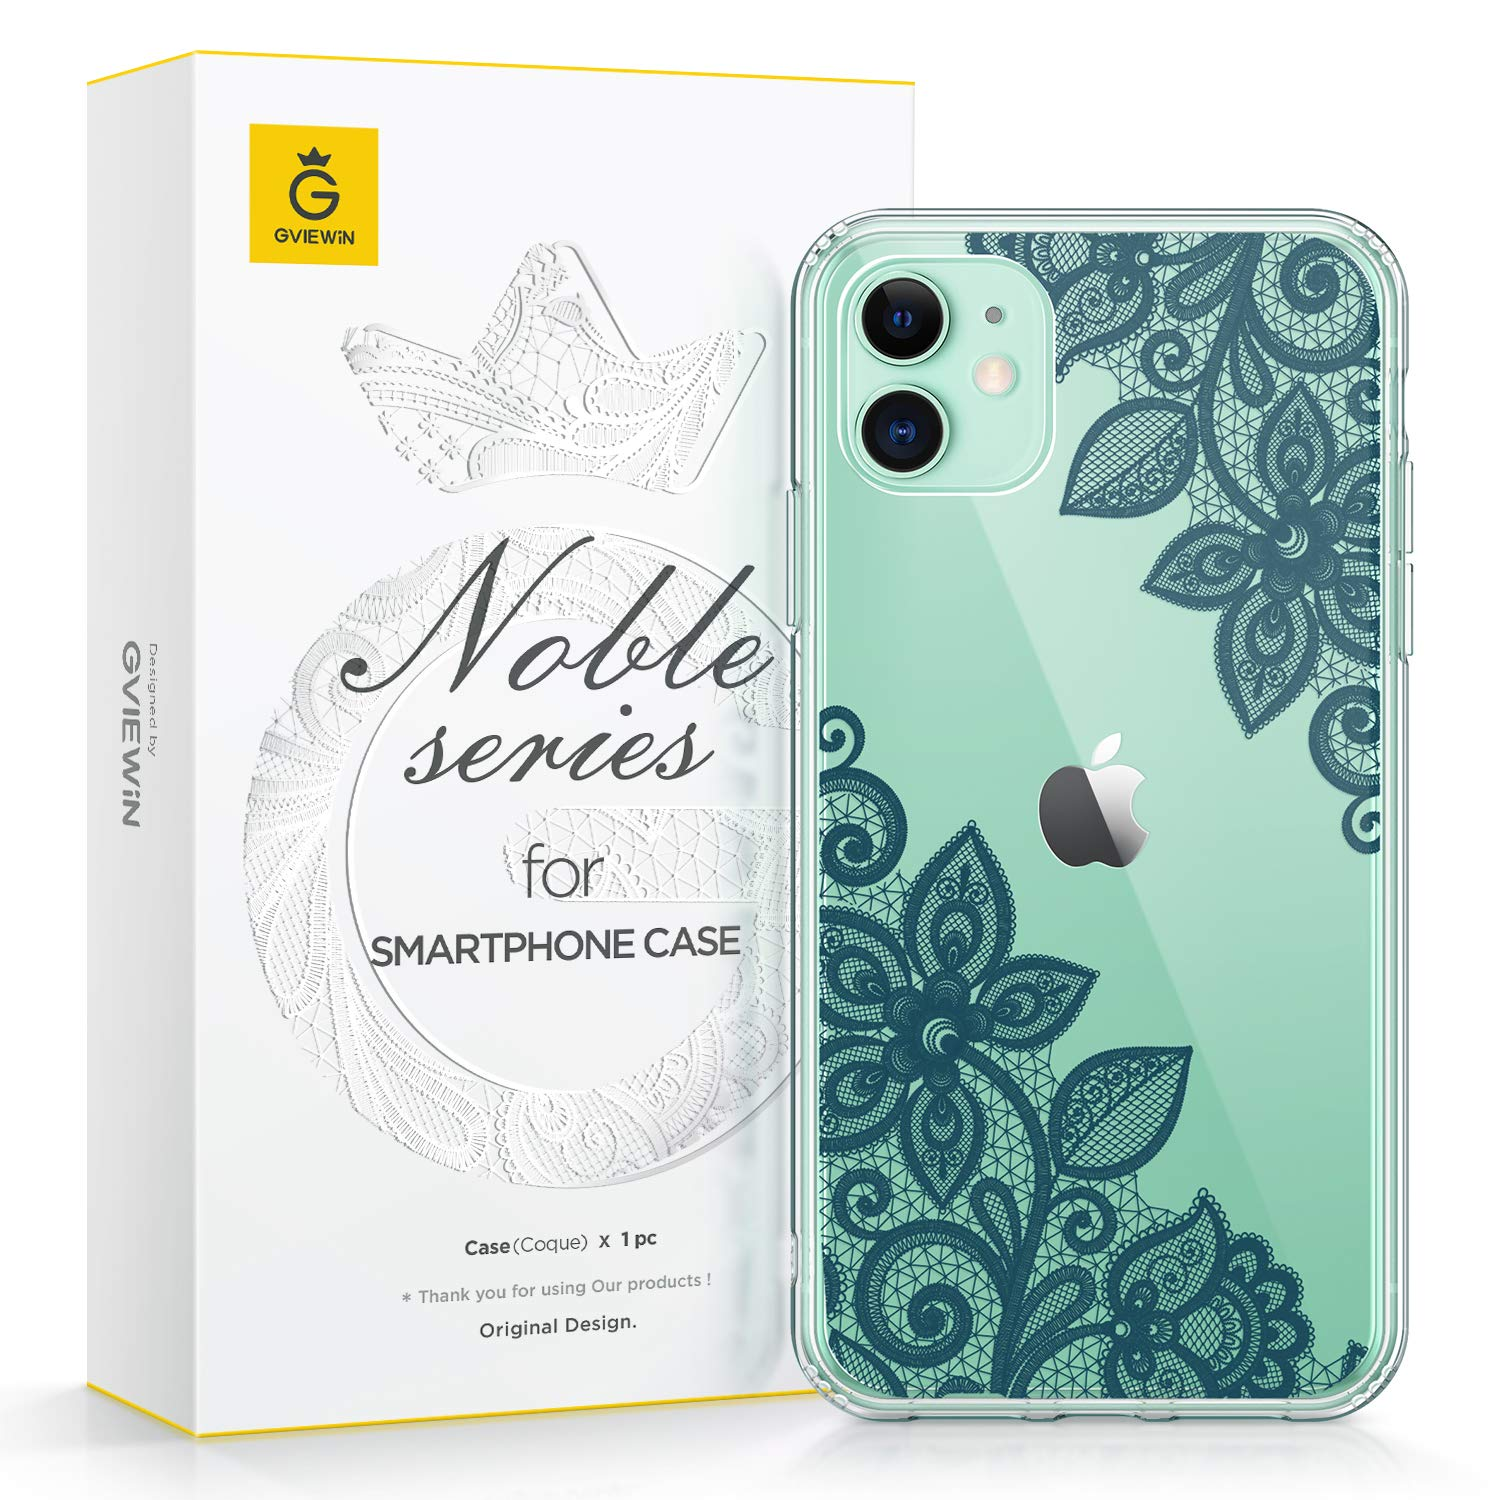 GVIEWIN Noble Series Designed for iPhone 11 Case, Clear Soft TPU Bumper & Hard Back with Floral Pattern Slim Lightweight Graceful Phone Cover for iPhone 11 6.1 Inch 2019 (Lace Flower/Midnight Green)